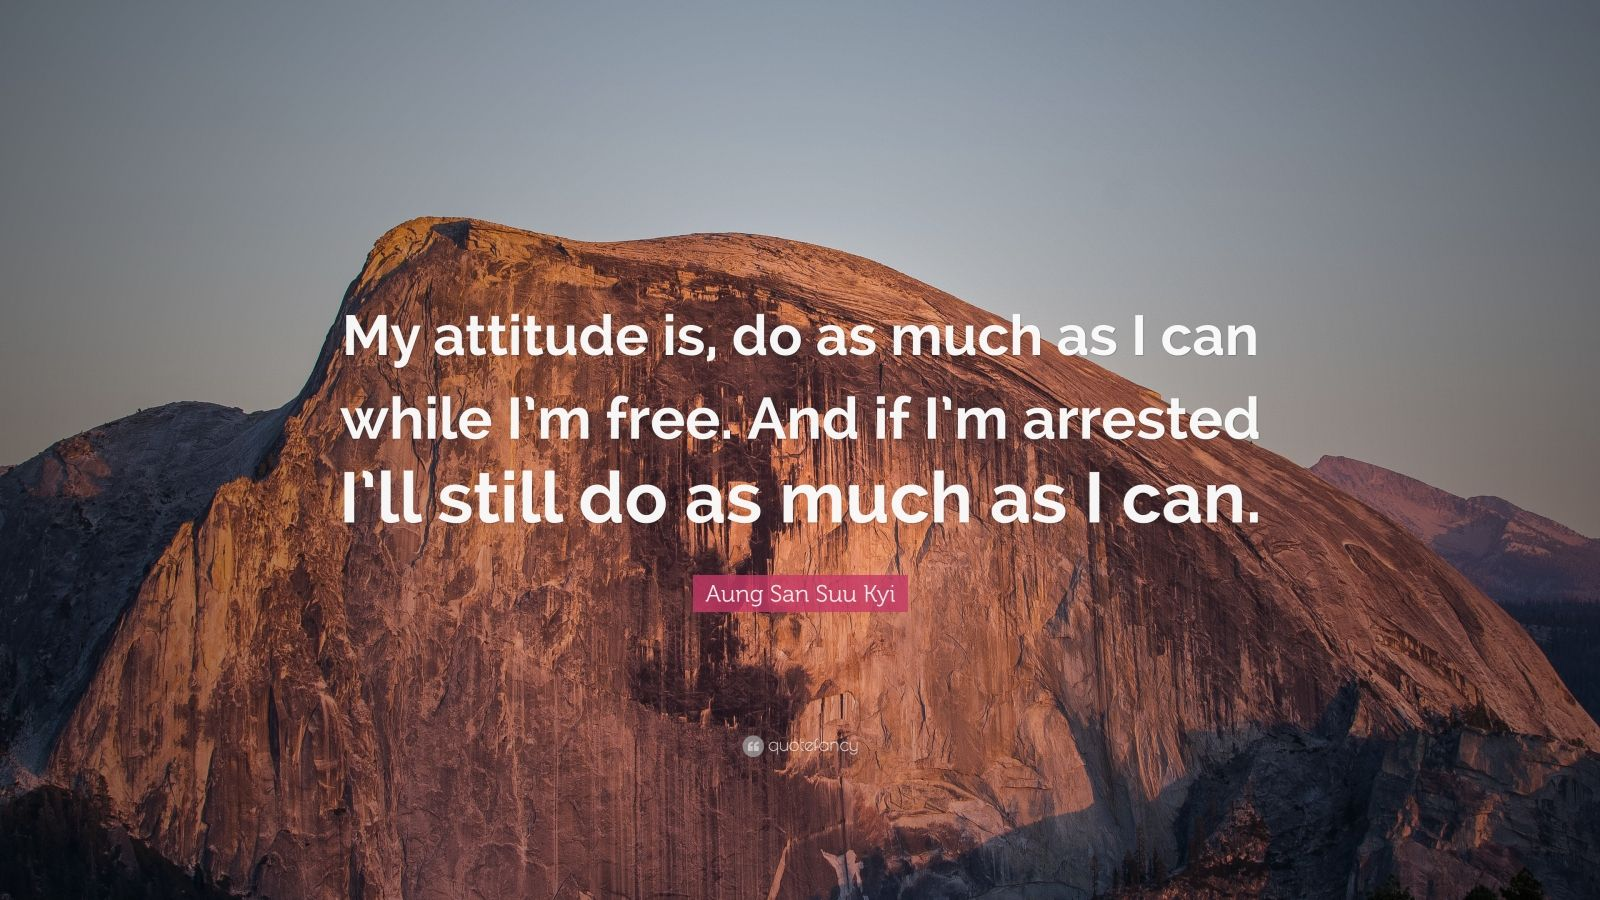 """Aung San Suu Kyi Quote: """"My attitude is, do as much as I can while I'm free. And if I'm arrested I'll still do as much as I can."""""""